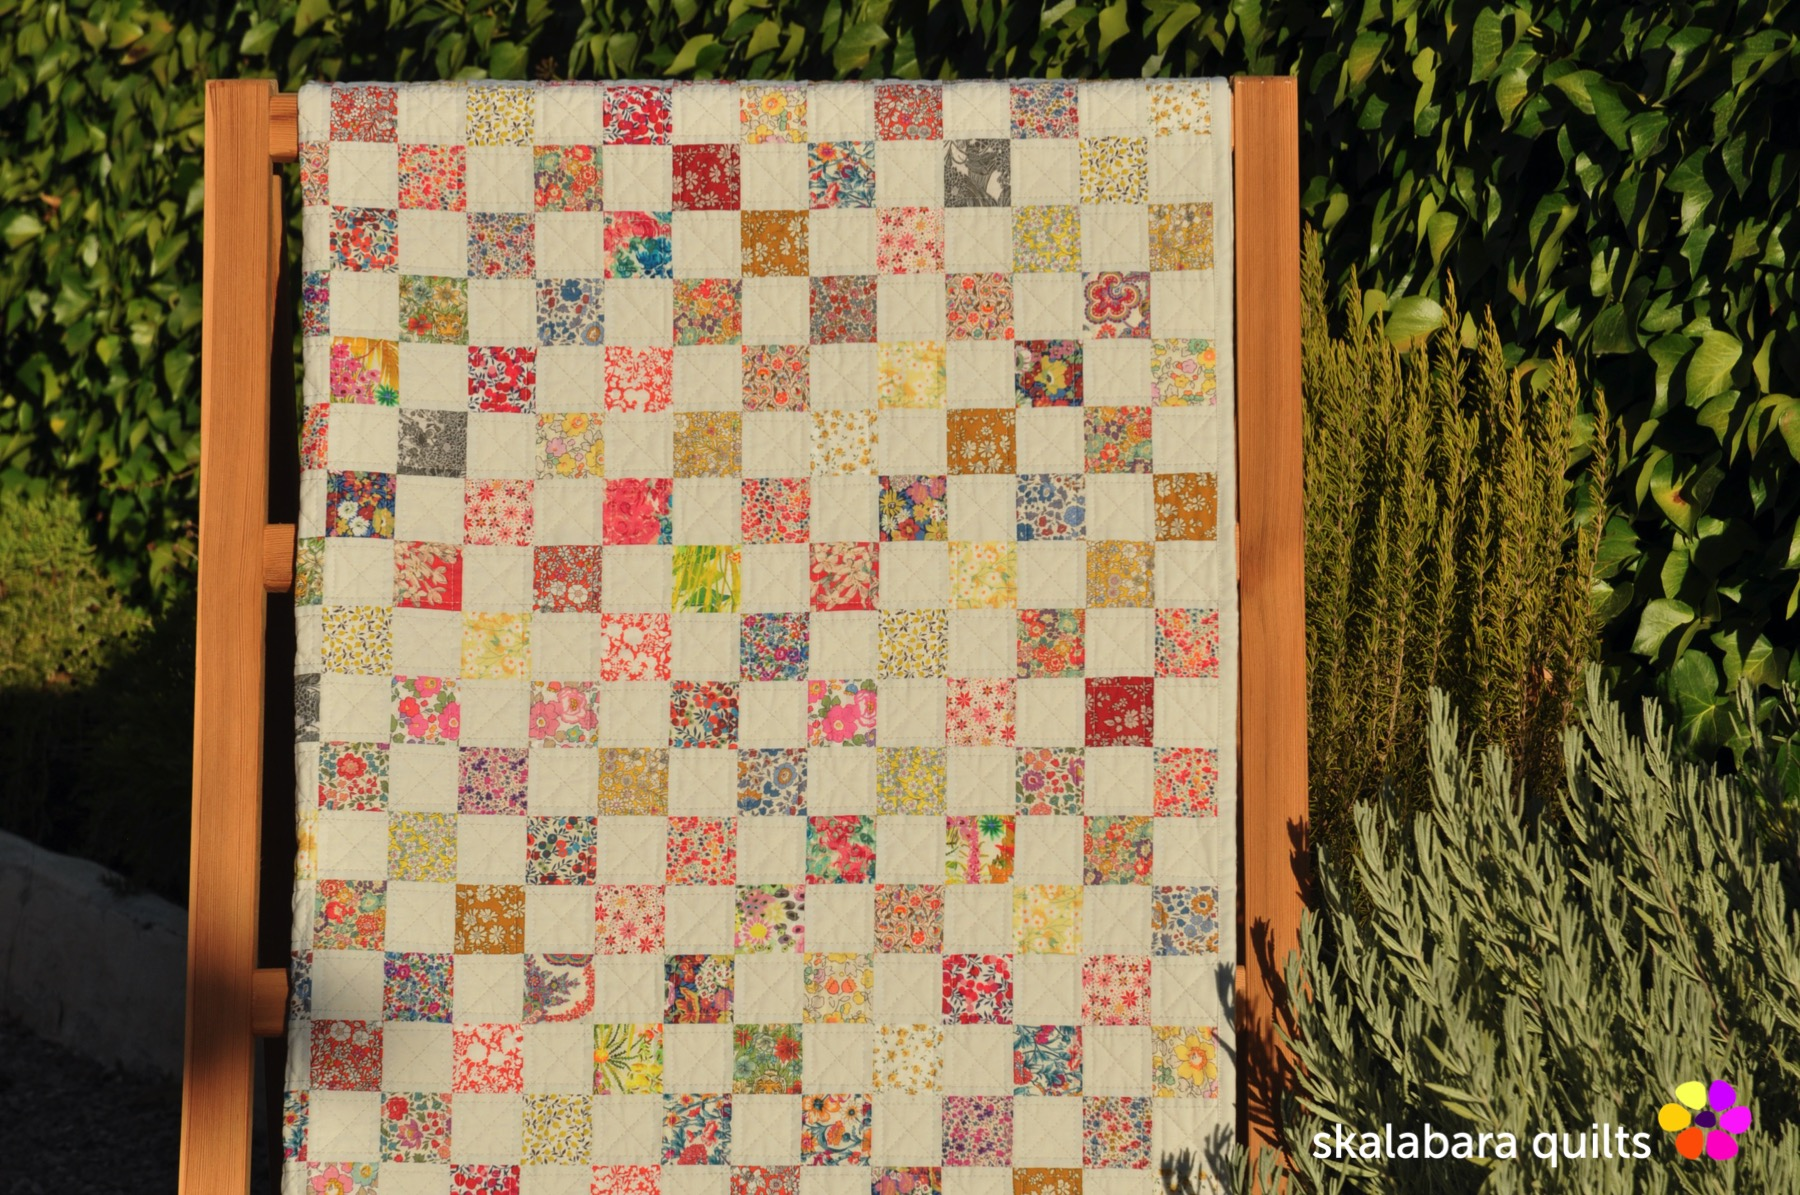 liberty checkered quilt 3 - skalabara quilts